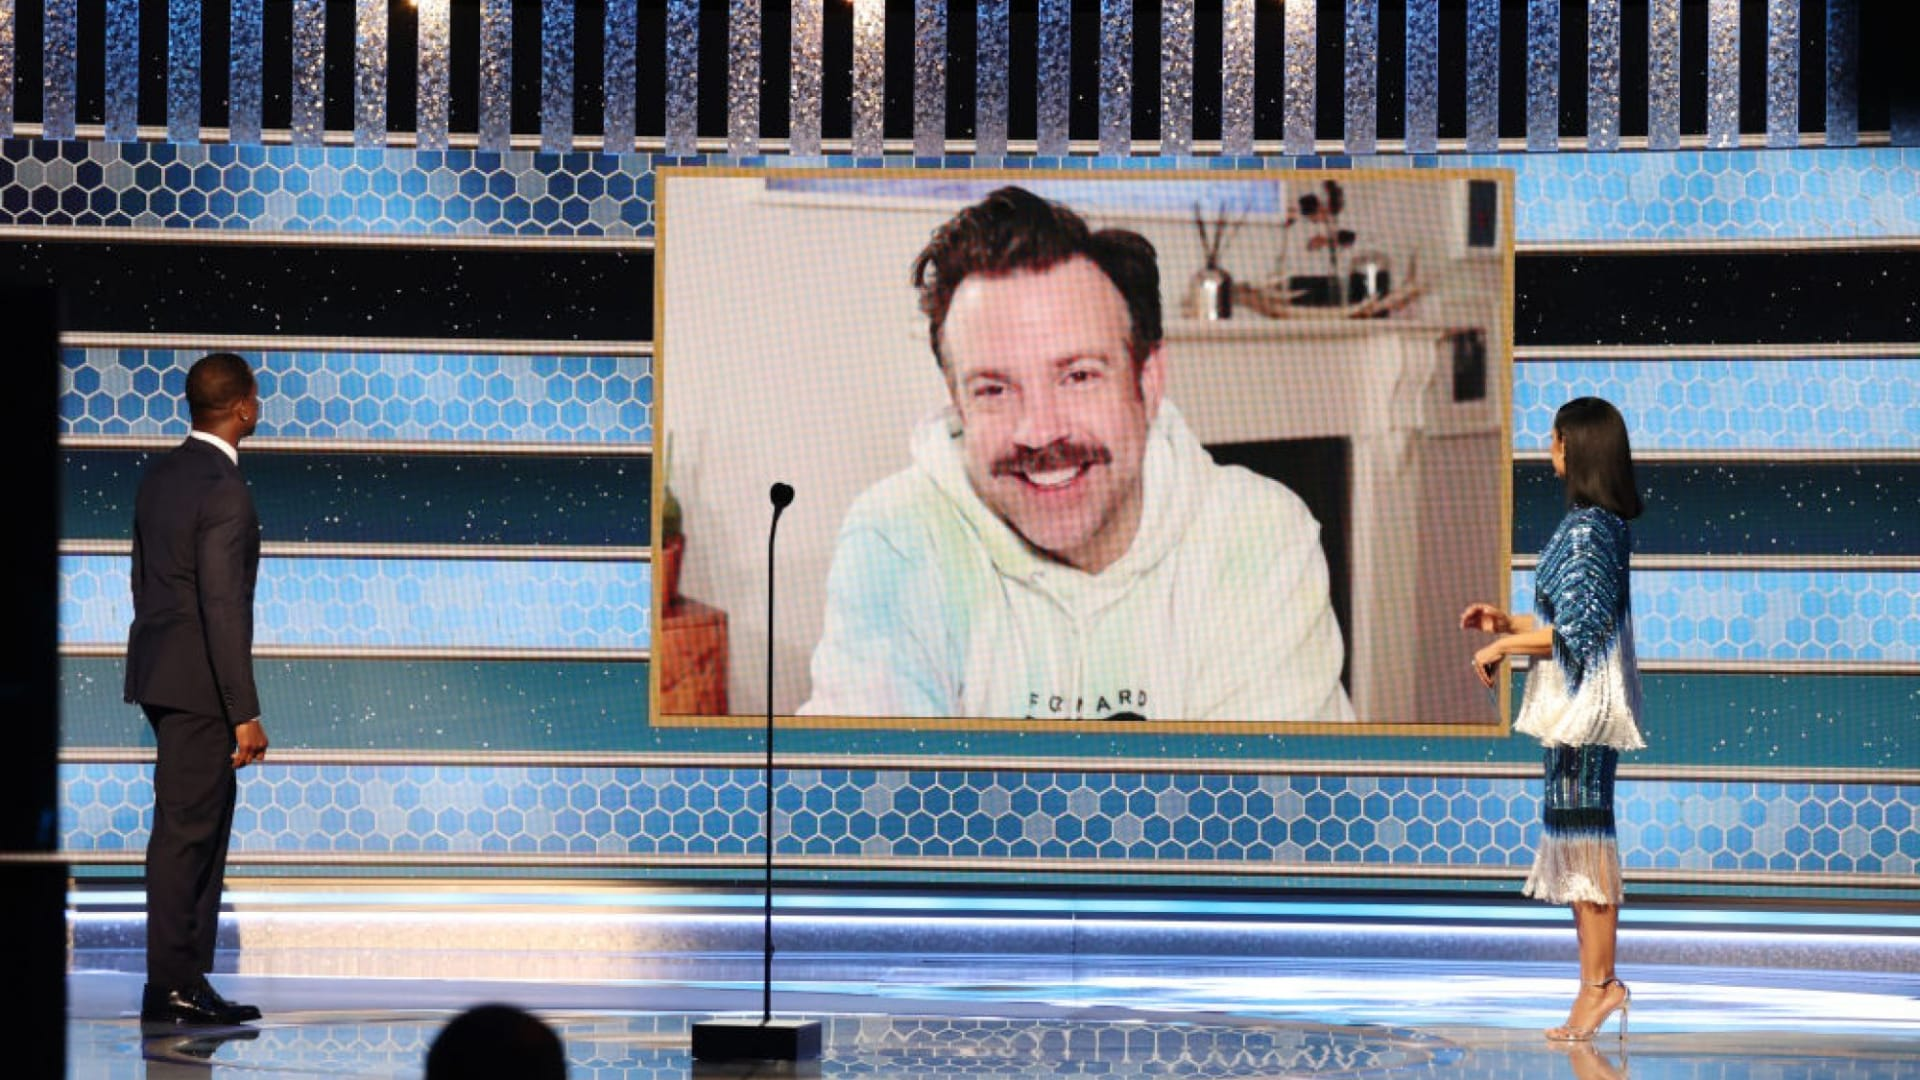 """Jason Sudeikis speaks remotely at the 2021 Golden Globes awards ceremony after being named Best Actor in a Television Series Musical or Comedy for his role in """"Ted Lasso."""""""